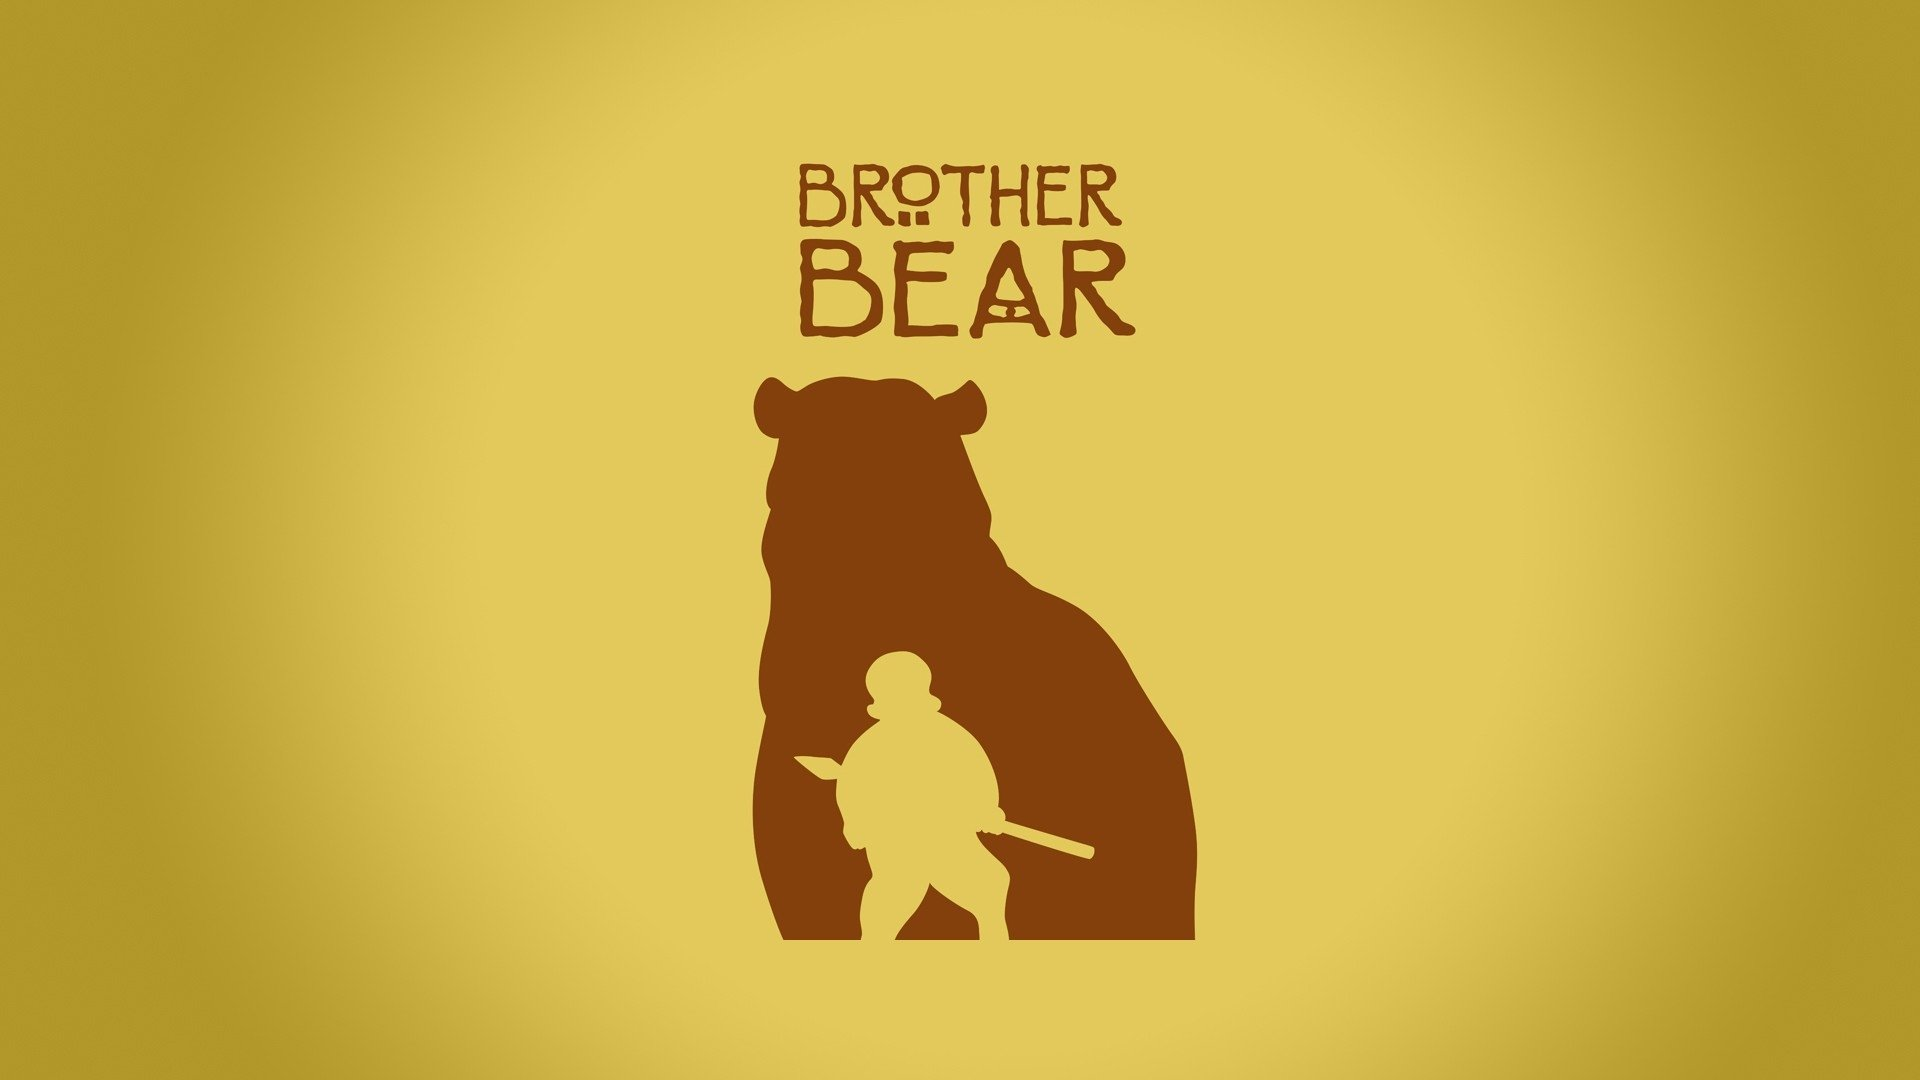 6 Brother Bear Fondos De Pantalla Hd Fondos De Escritorio